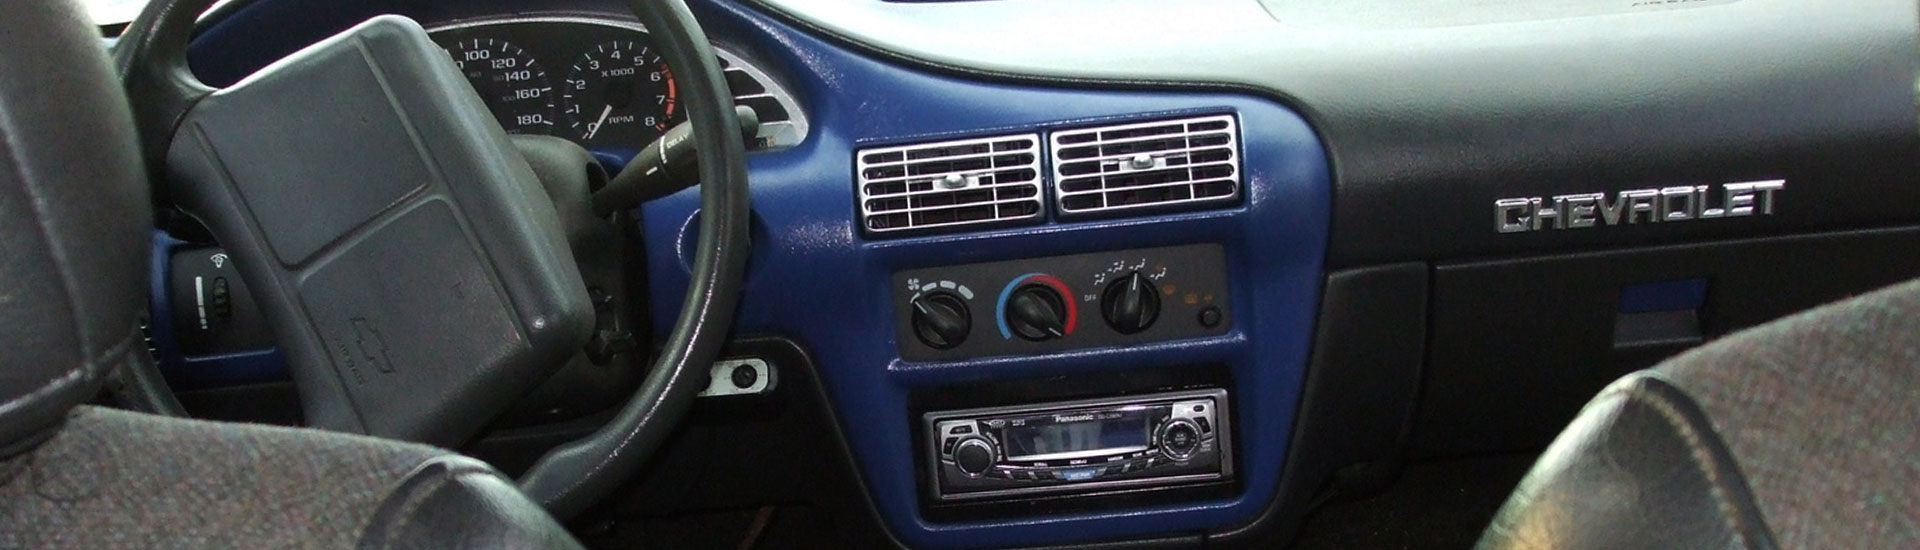 hight resolution of chevrolet cavalier custom dash kits